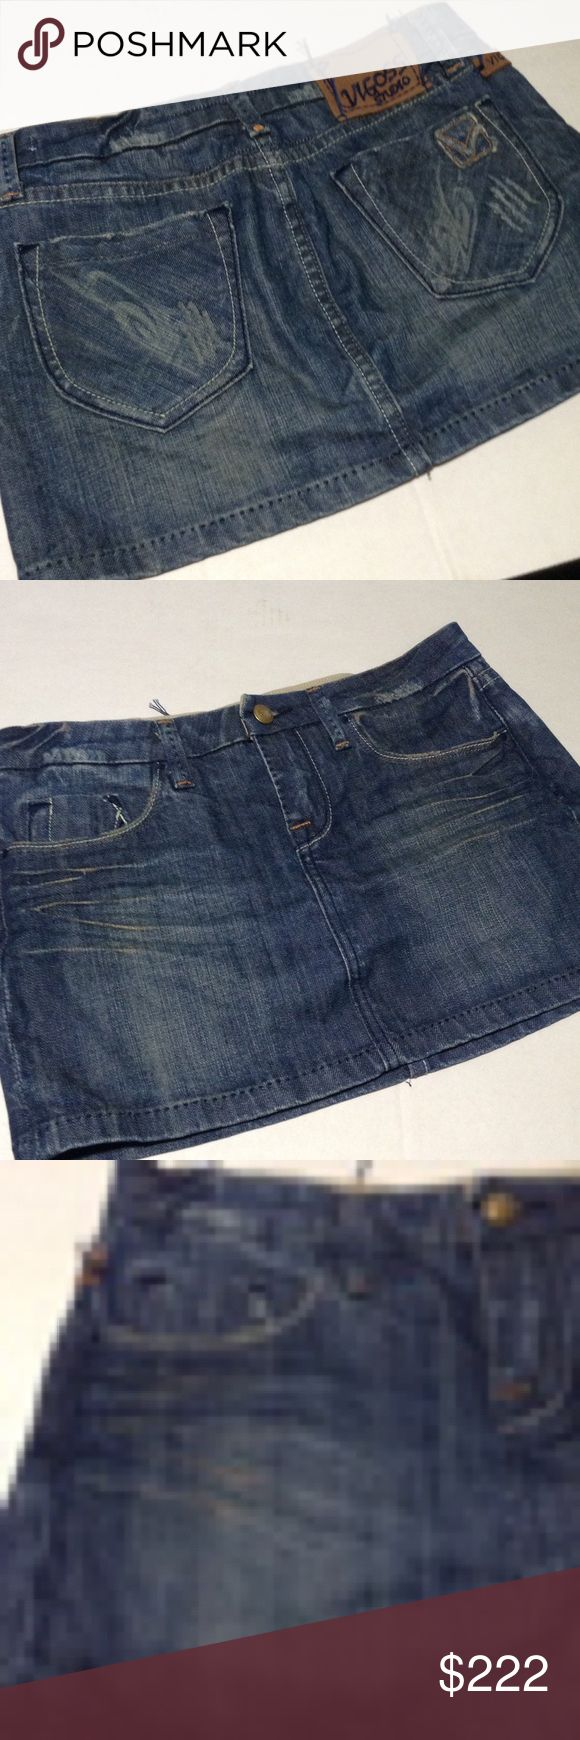 Vigoss Studio Distressed Denim Skirt Hot looking skirt with striking stitching.  Factory distressed and feathered.  Size states 27, but Posh only sizes skirts by size number.  Coordinates with size 3.  Just enough stretch to show off your assets! Vigoss Skirts Mini